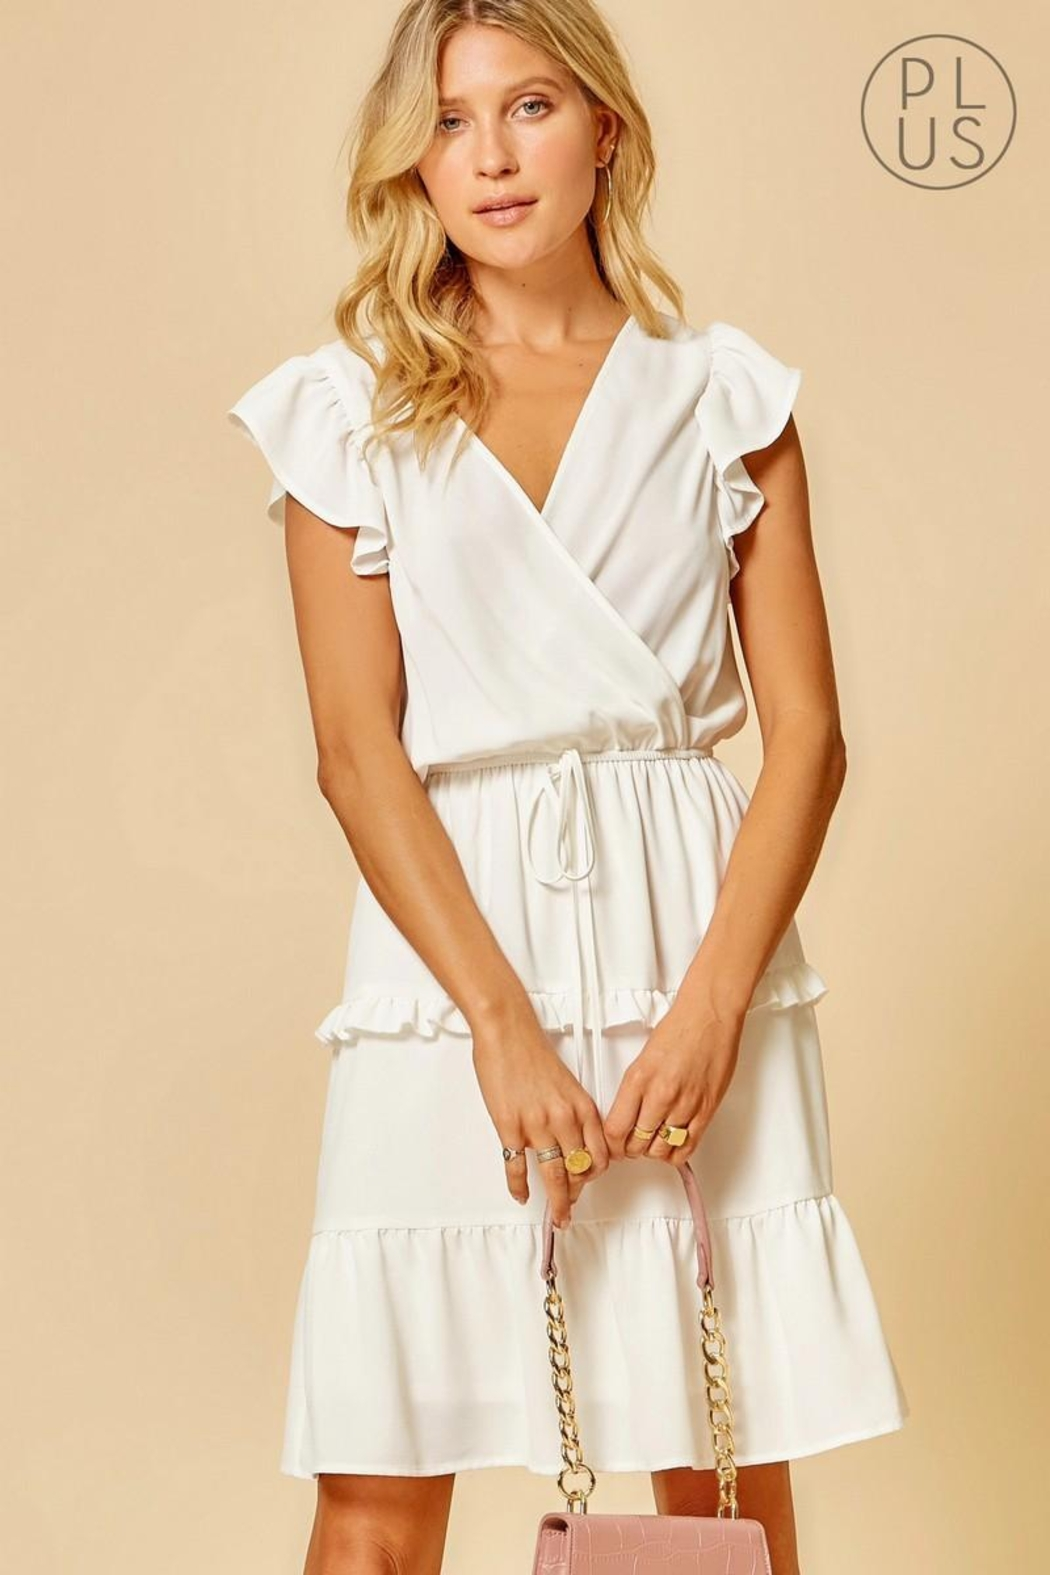 Andree by Unit Ivory Ruffle-Tiered Dress - Main Image